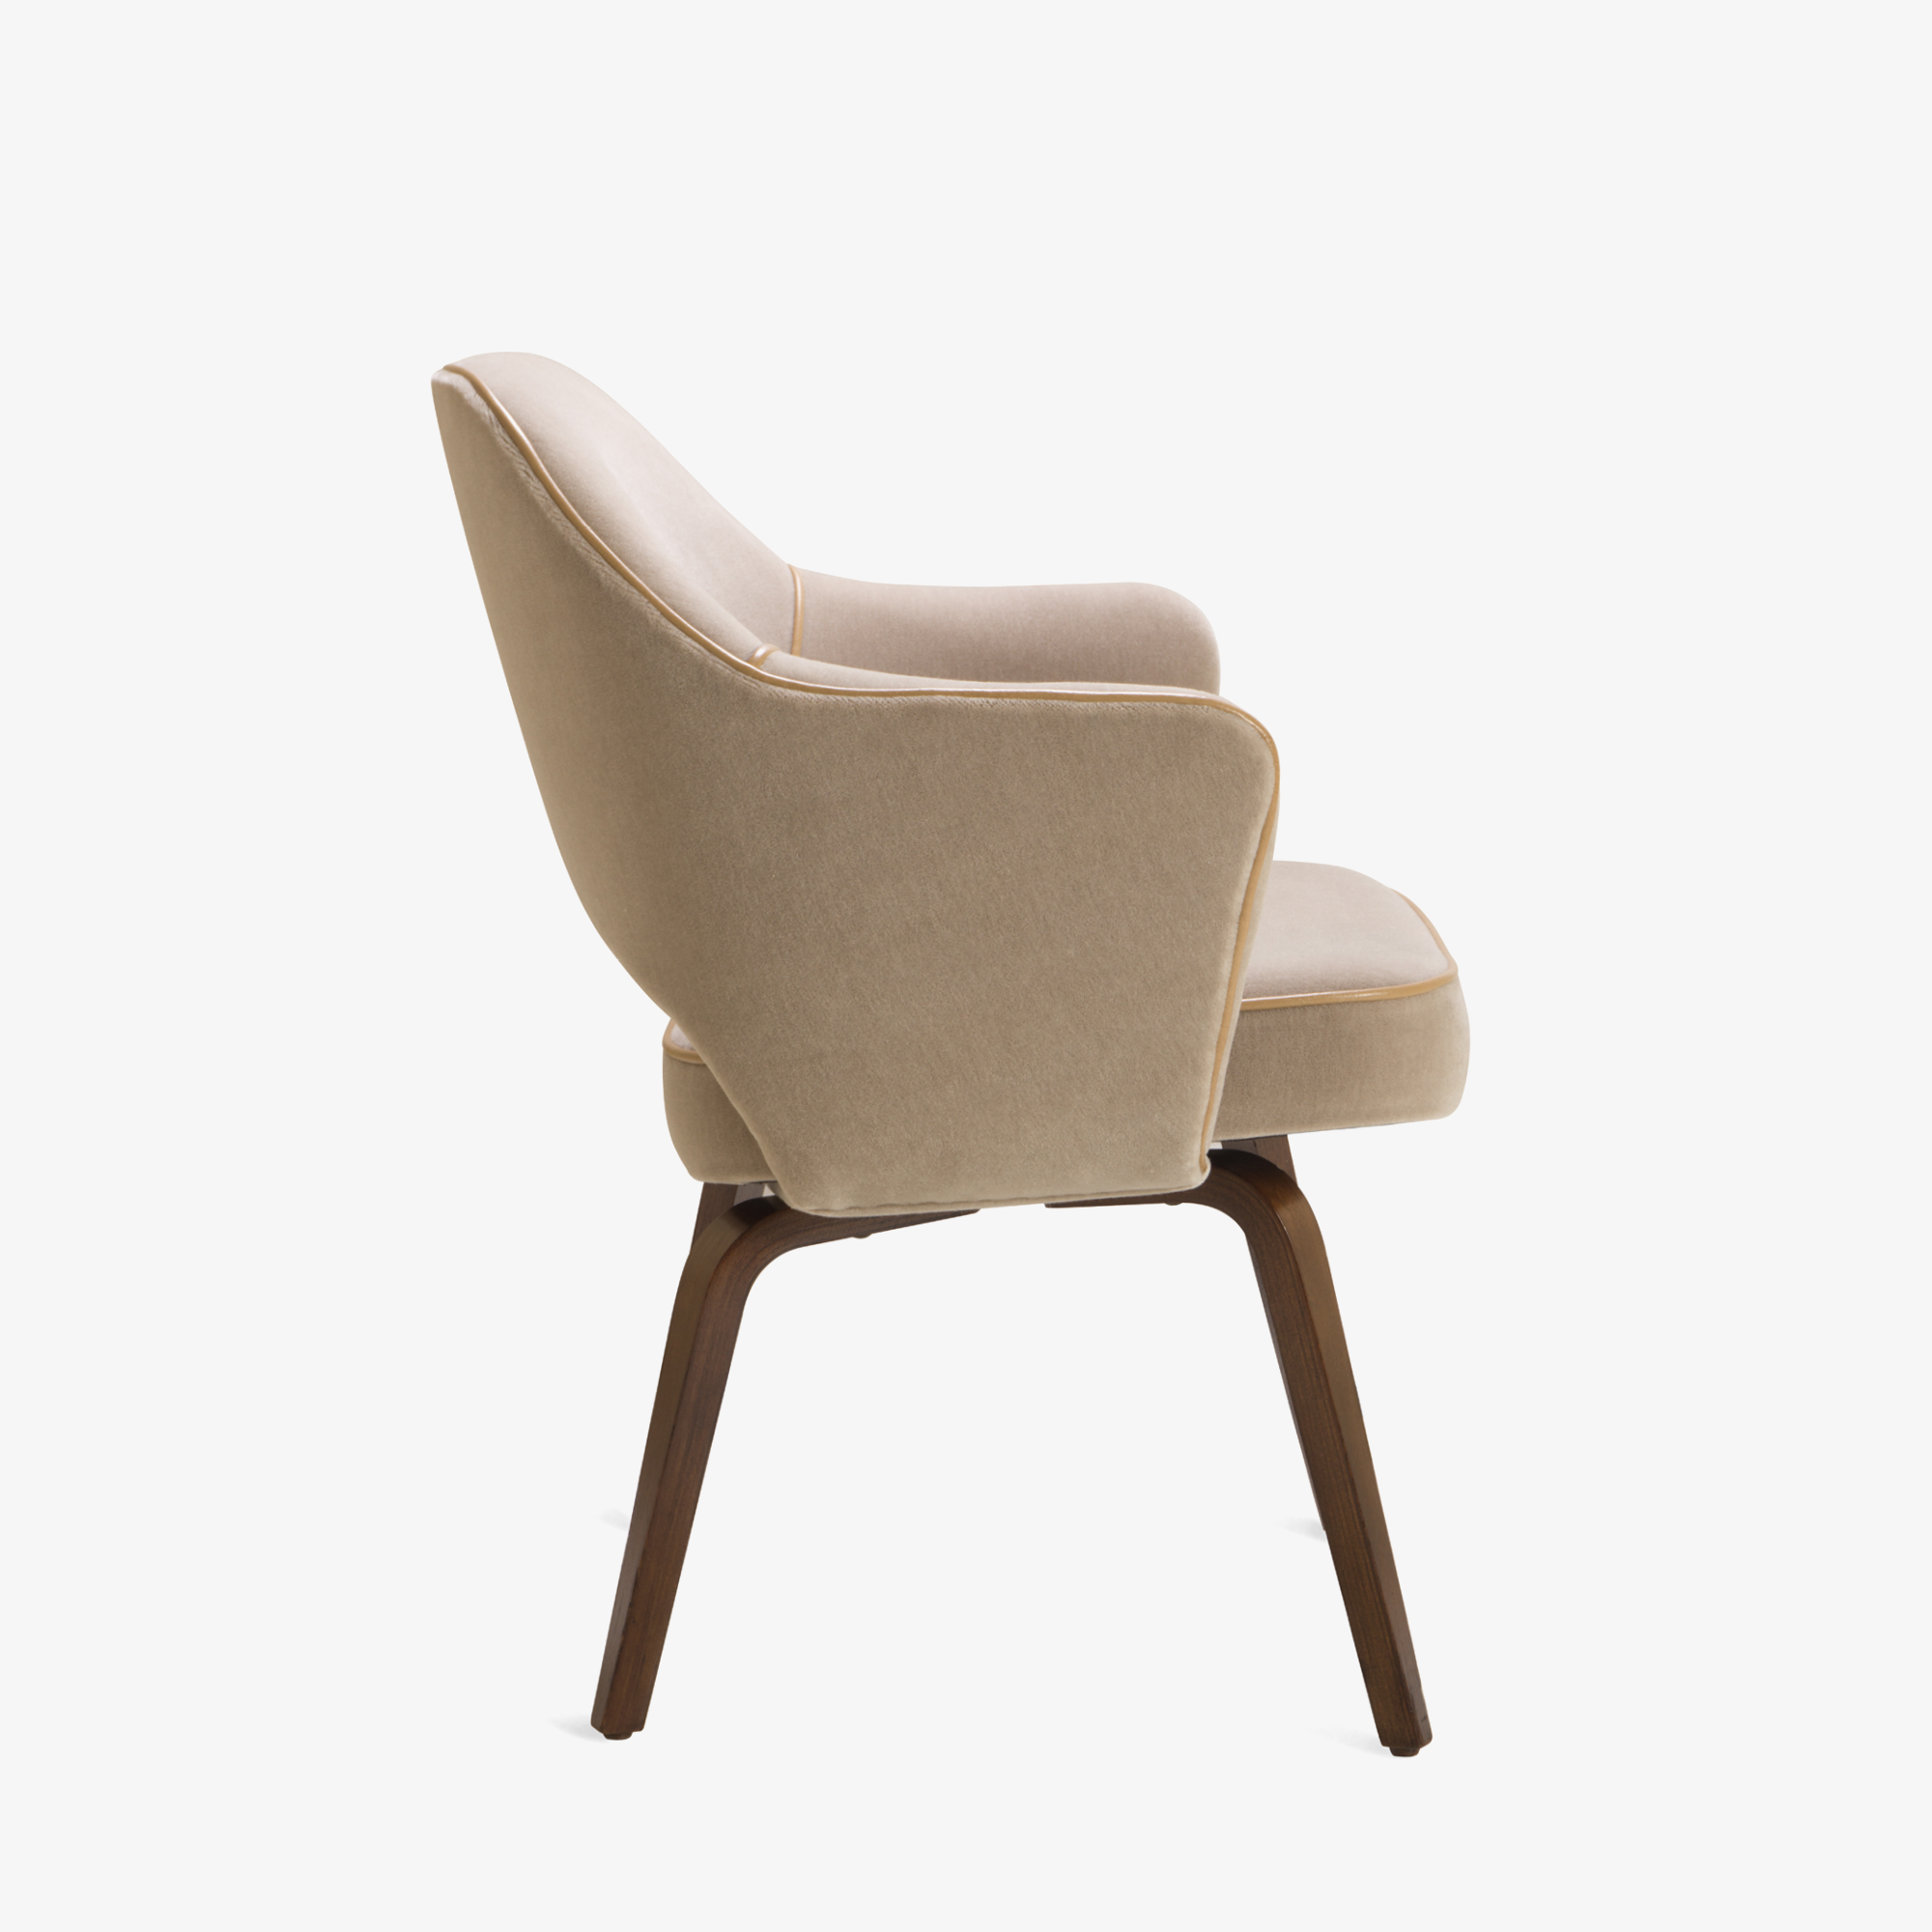 Knoll Saarinen Executive Arm Chair with Walnut Legs